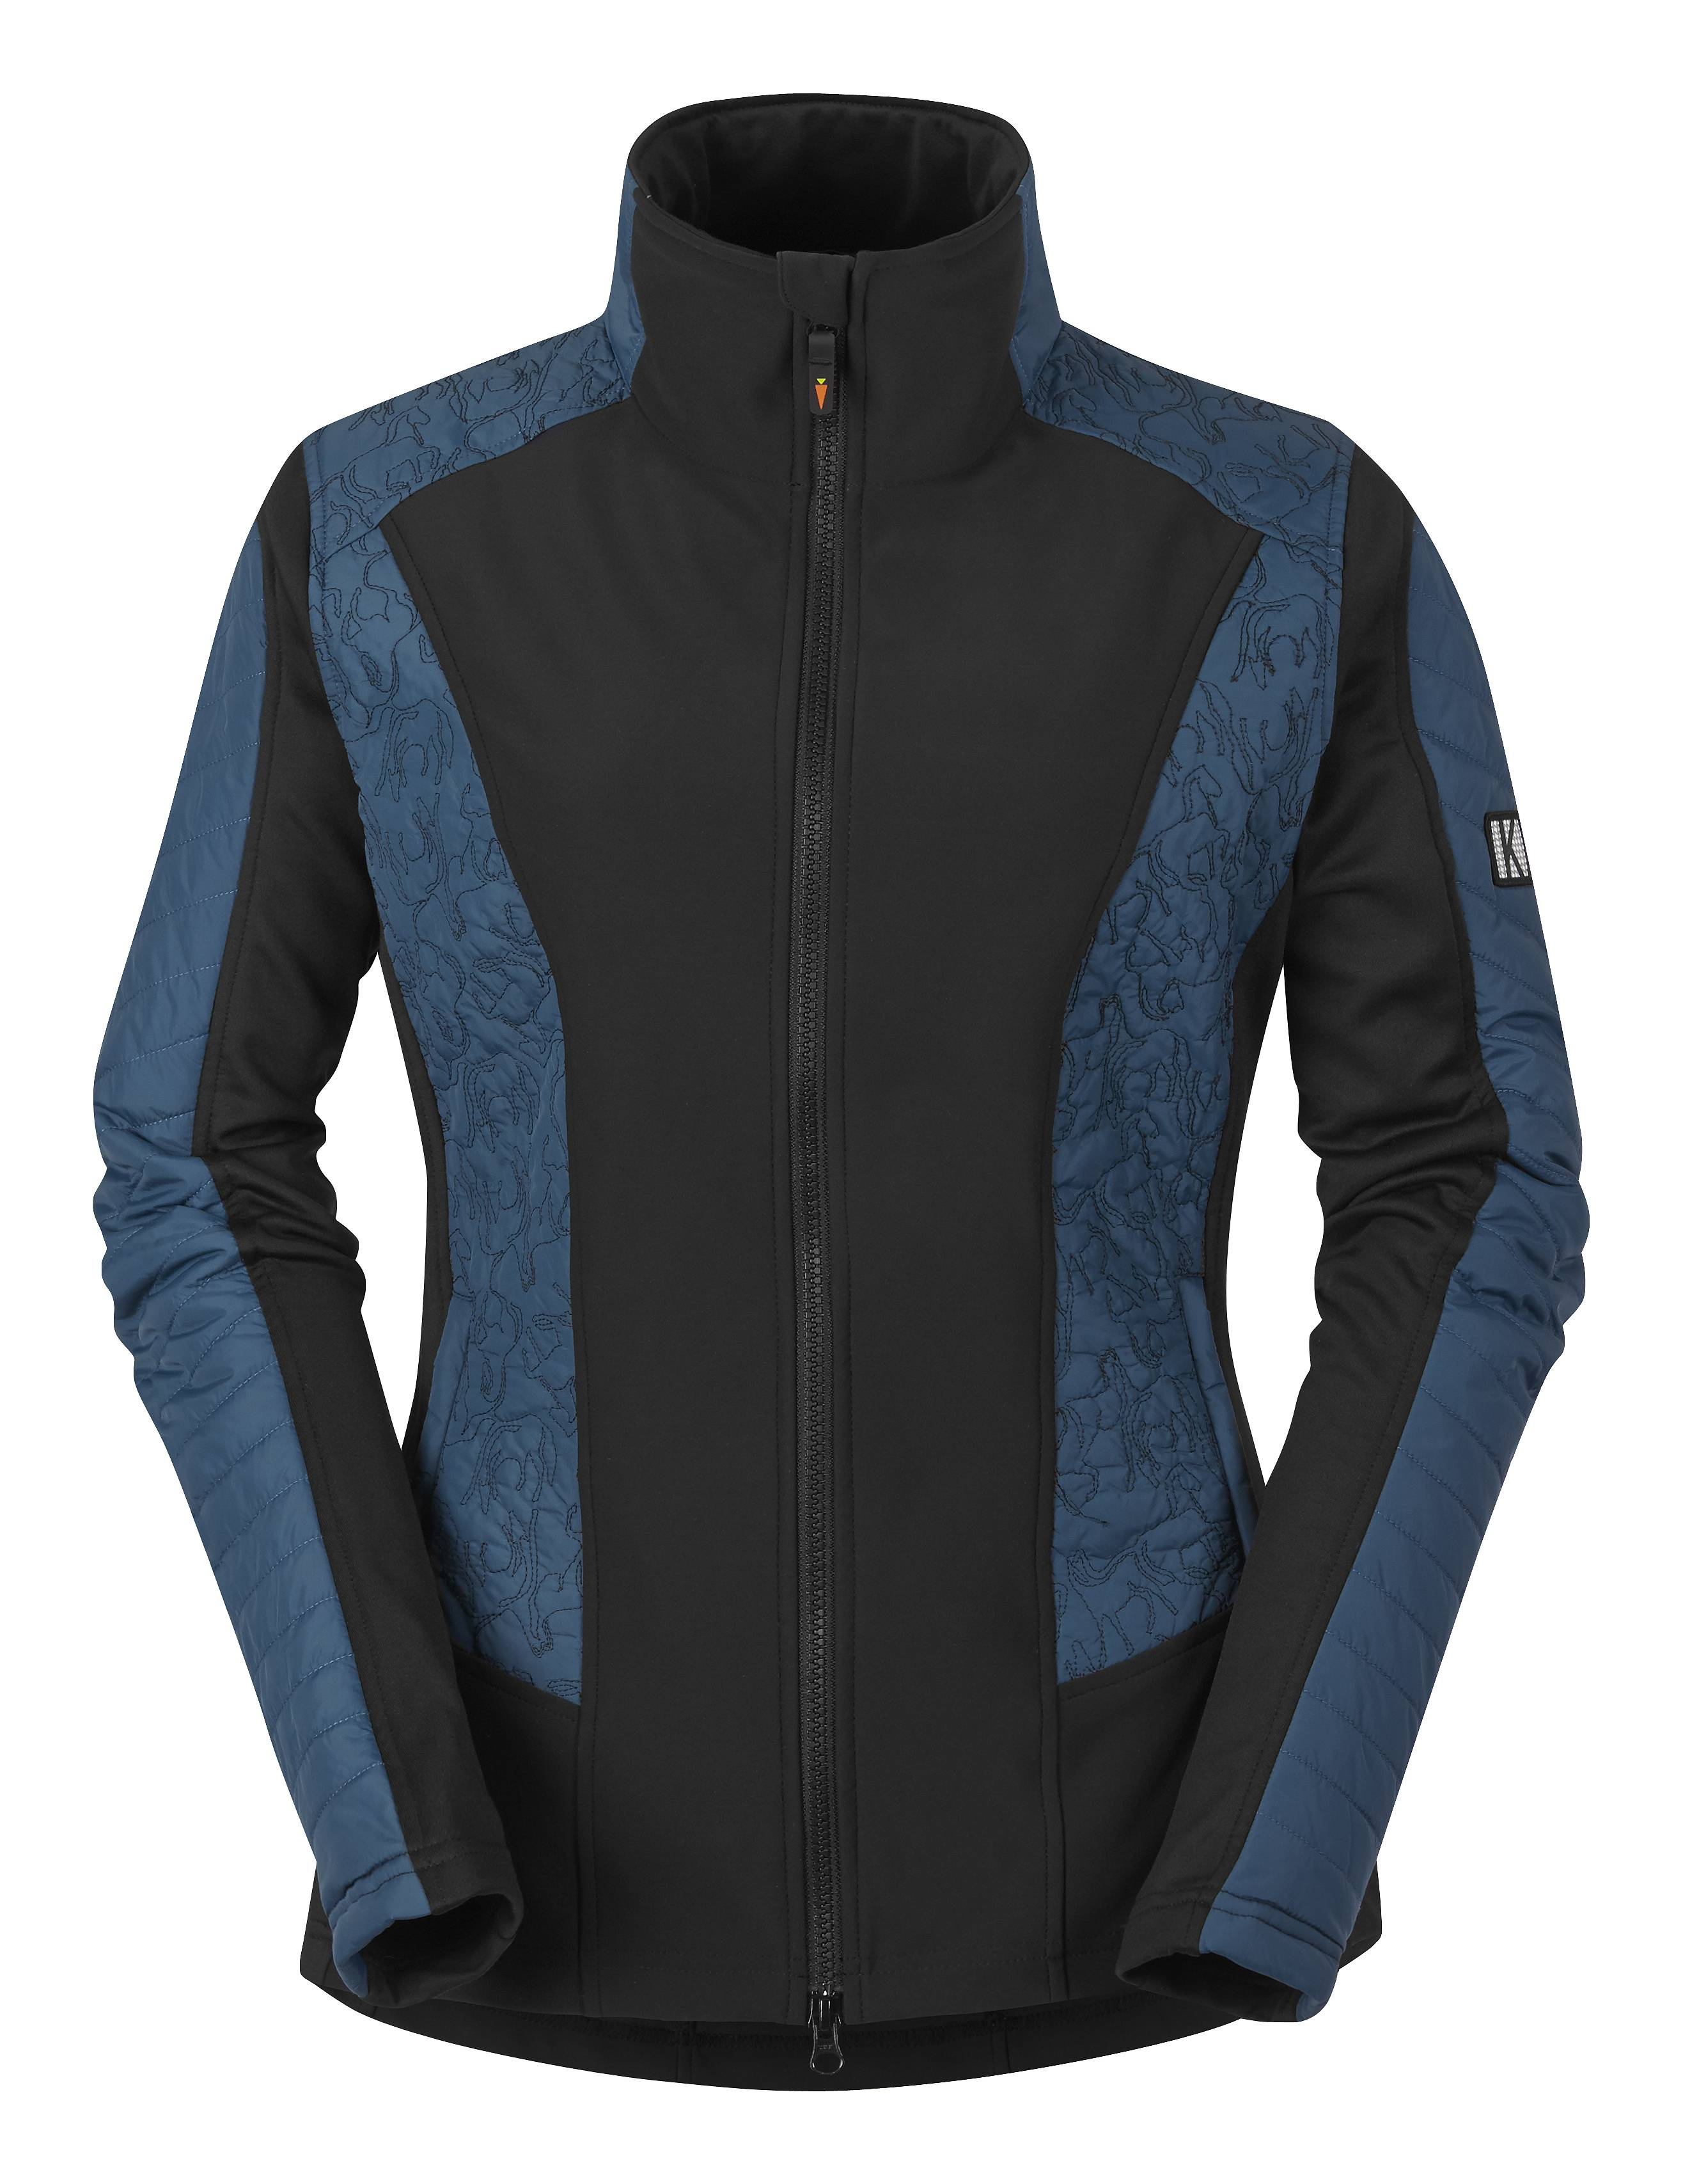 Kerrits Ladies Stretch Panel Riding Jacket